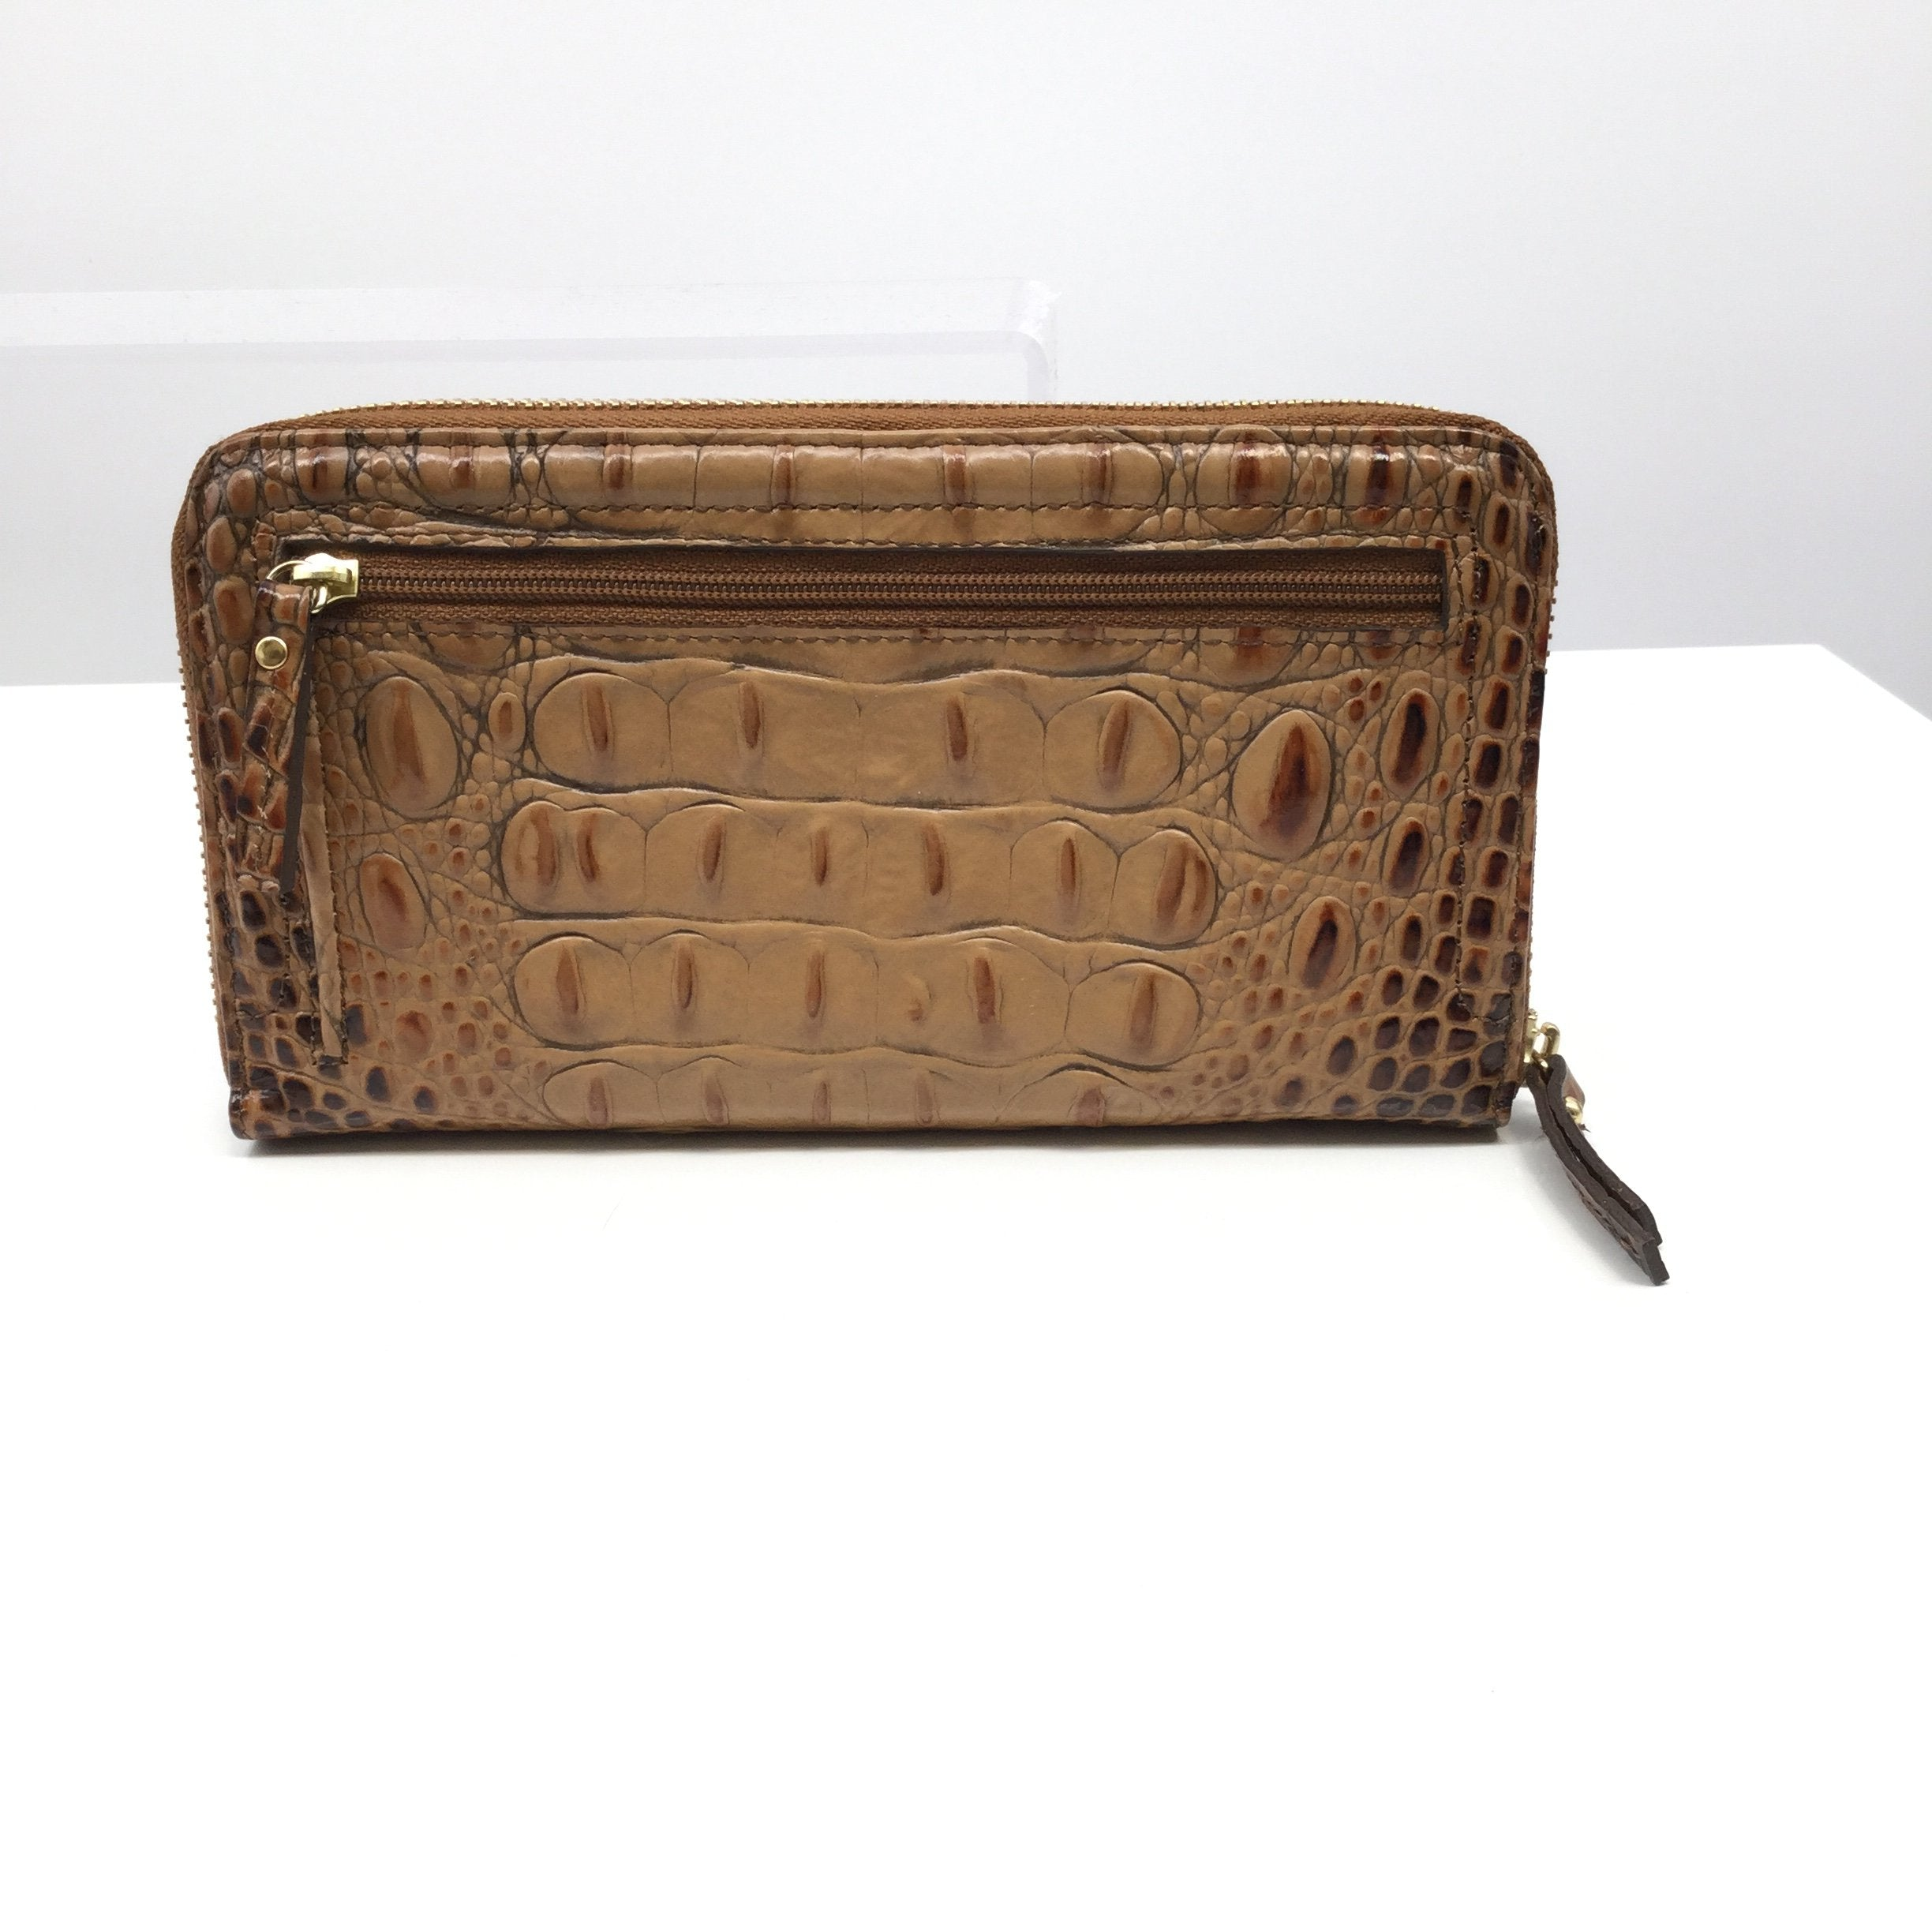 Brown Brahmin Wallet - <P>BROWN MEDIUM SIZED BRAHMIN WALLET. GOLD HARDWARE AND TWELVE CARD HOLDER POCKETS AS WELL AS A CLEAR ID HOLDER. INSIDE ZIPPER COMPARTMENT AND OUTSIDE ZIPPER COMPARTMENT.</P>